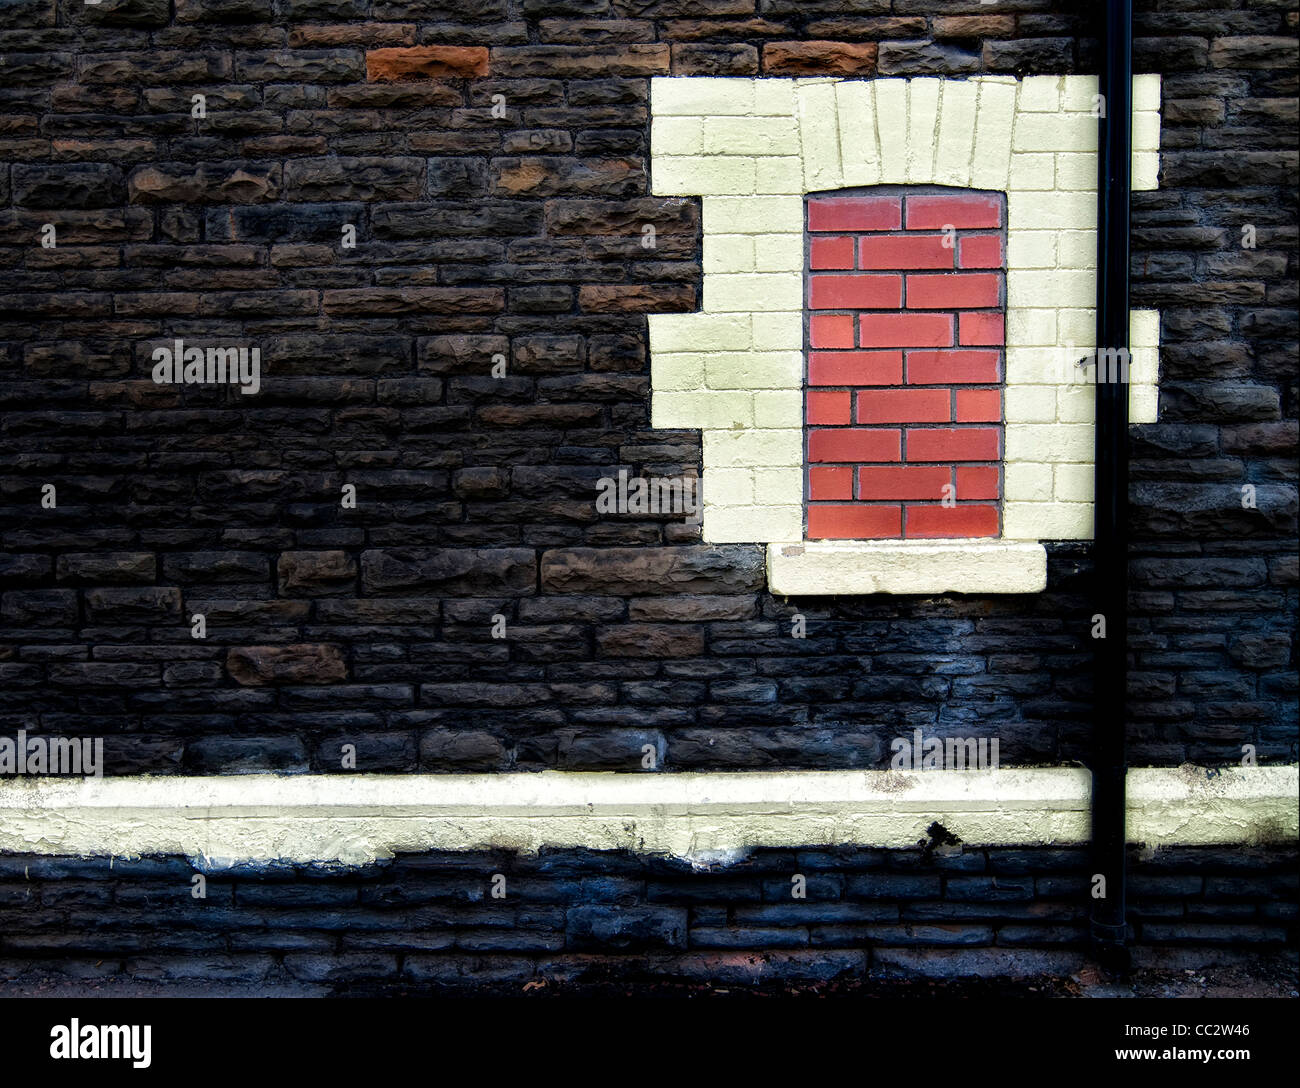 Derelict bricked in window with drainpipe - Stock Image